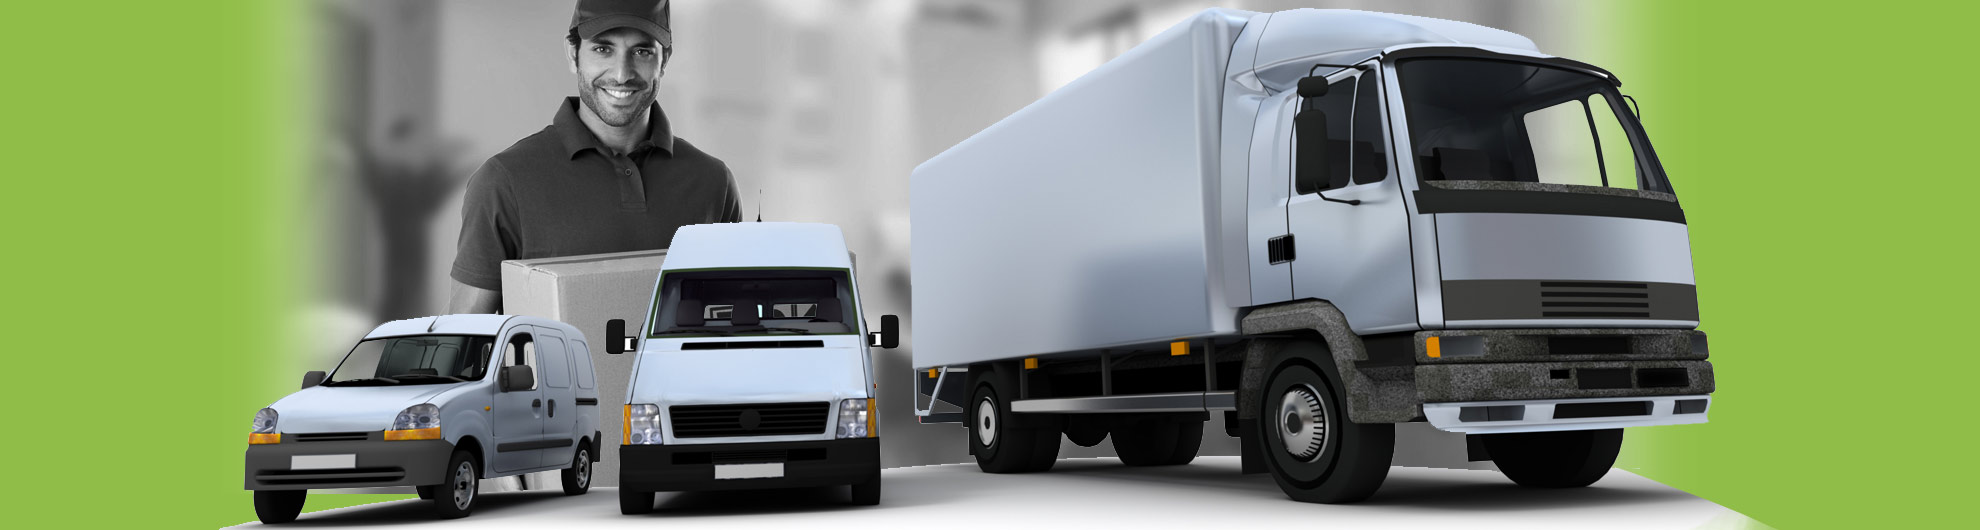 Ulladulla  International Movers - Shipping Companies